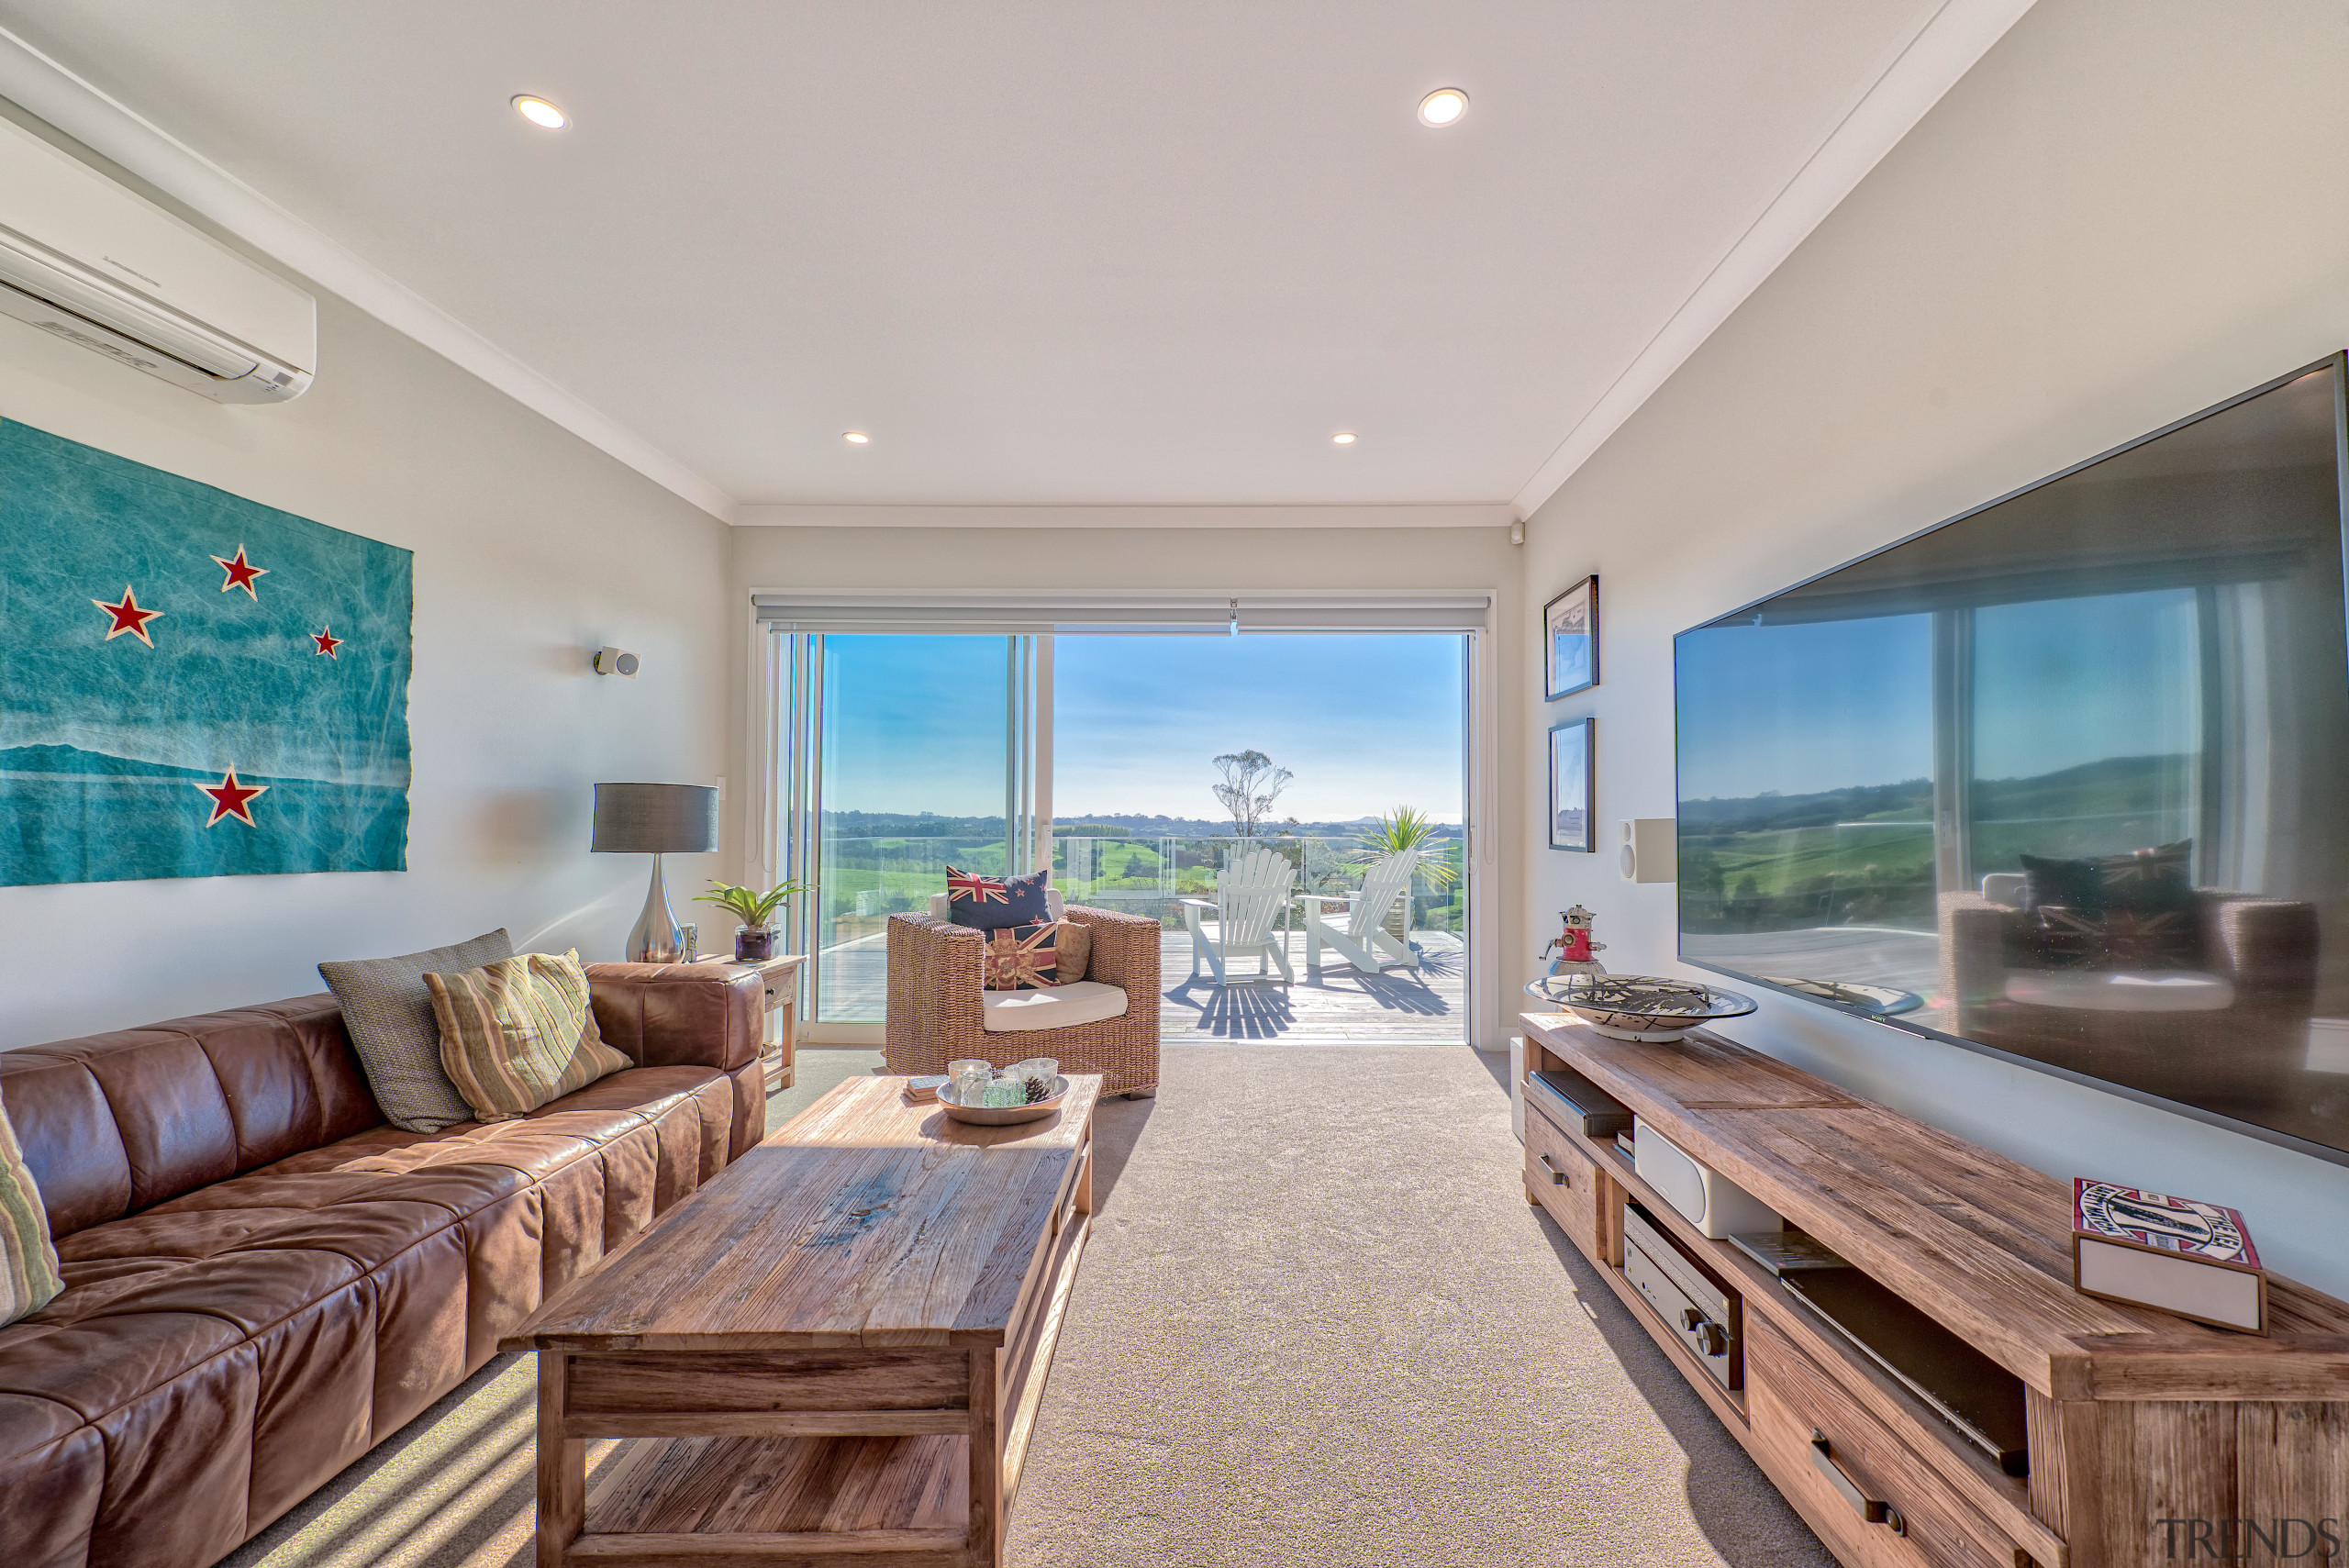 Indoor-outdoor flow is a feature of most rooms ceiling, estate, home, interior design, living room, property, real estate, window, fowler homes,  south auckland,  home builder,  resene